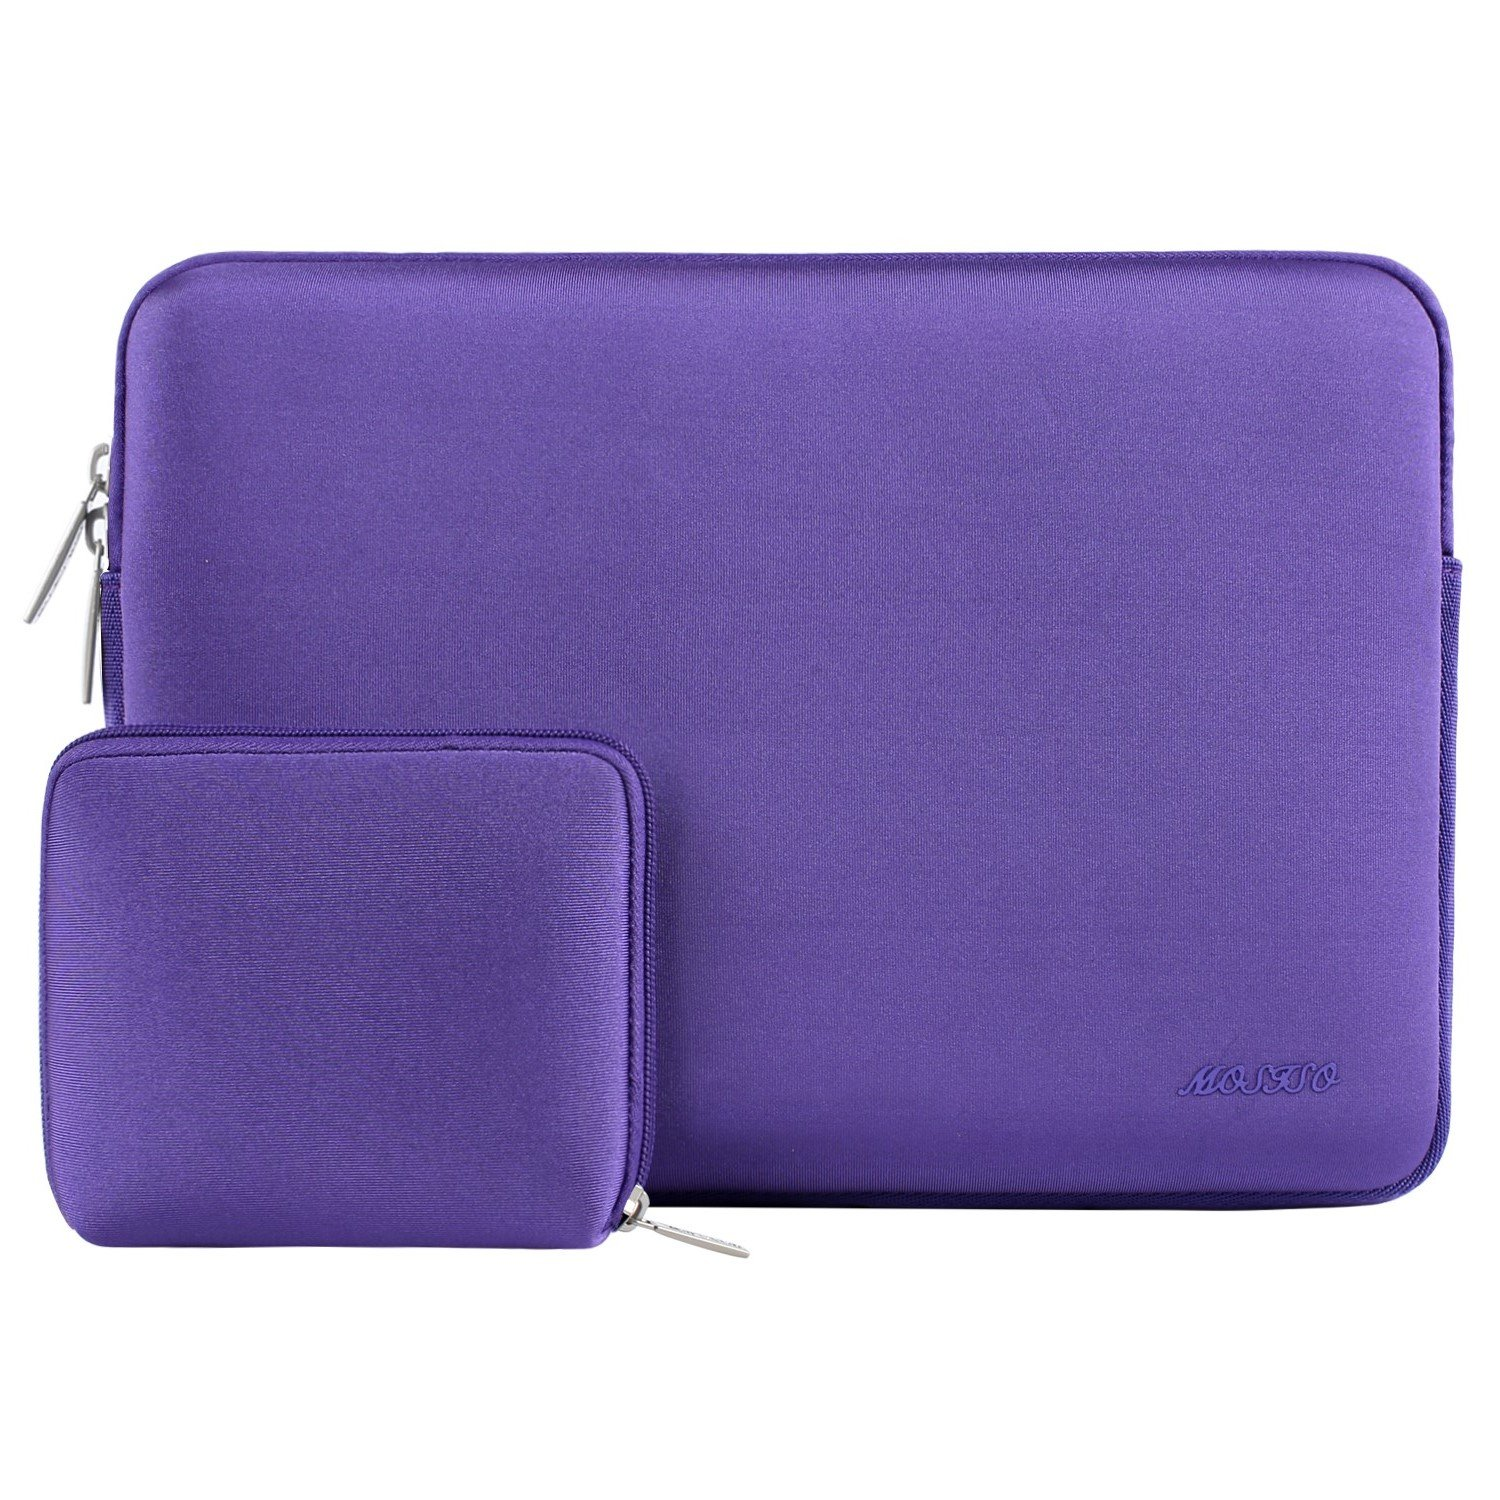 Ultrabook Netbook Tablet with Small Case Water Repellent Neoprene Carrying Cover Airy Blue MOSISO Laptop Sleeve Bag Compatible 11-11.6 Inch MacBook Air